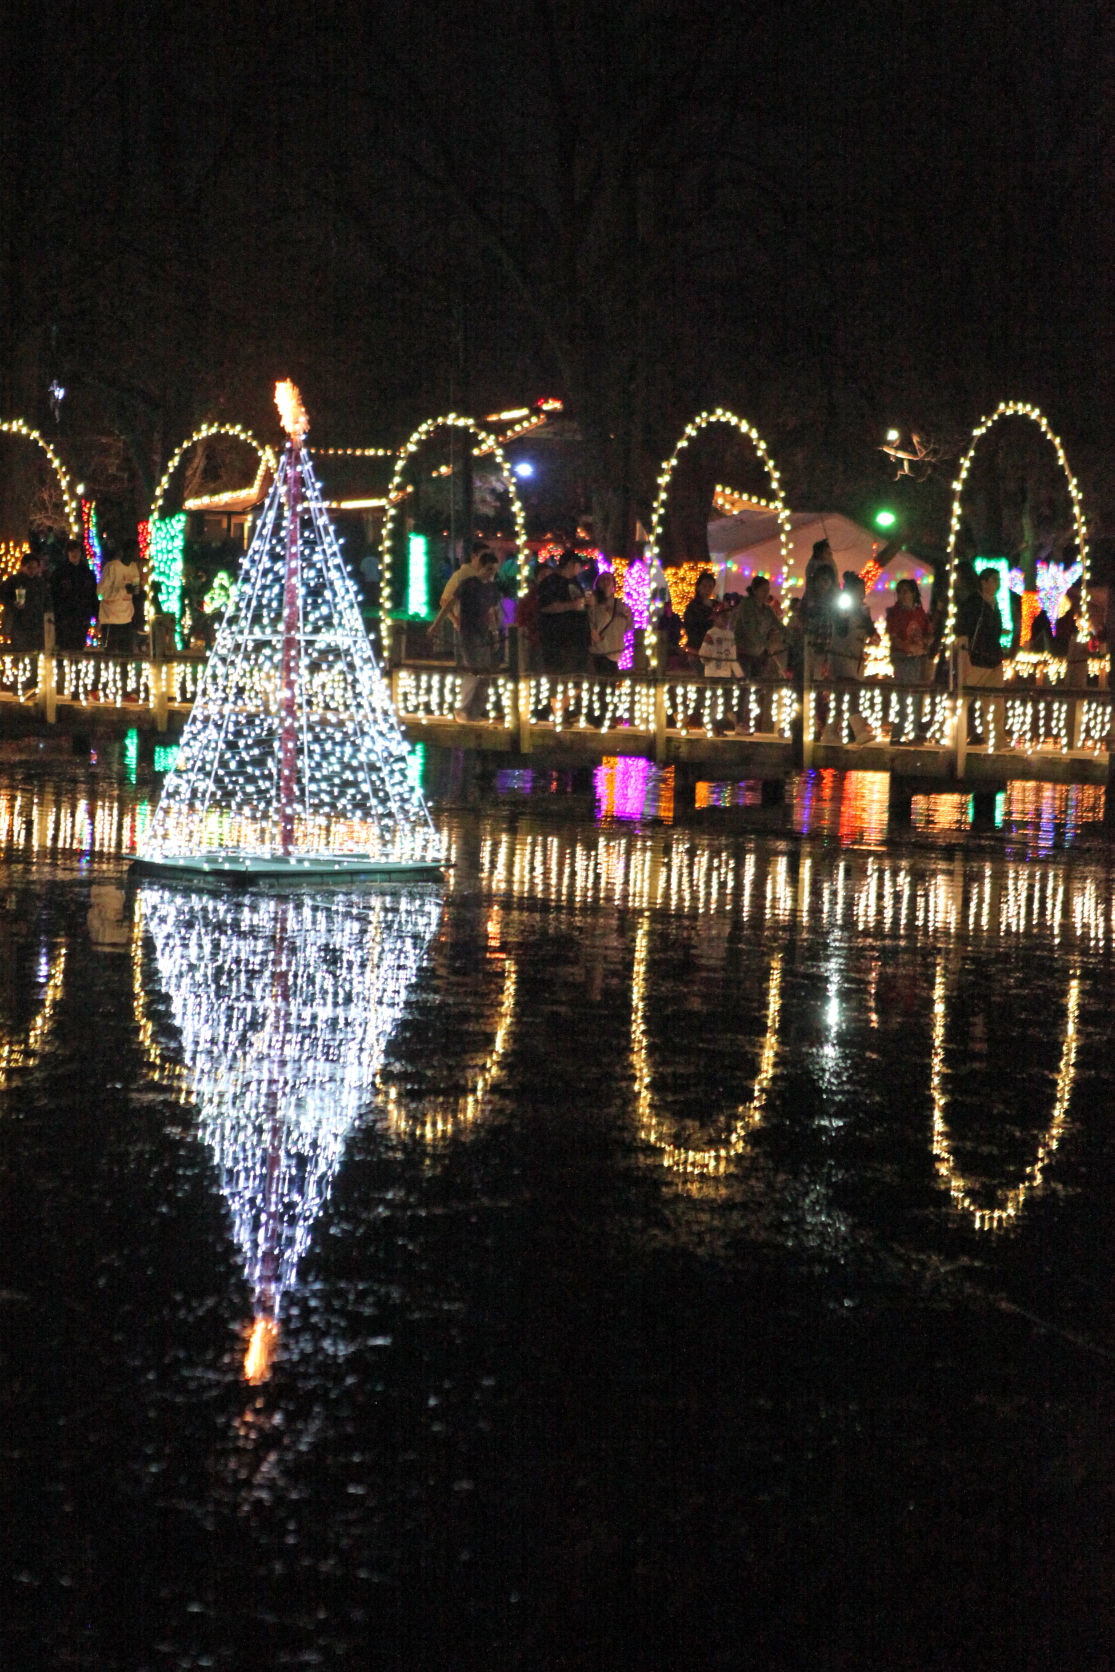 Holidays in the park: Christmas event celebrates 29 years in ...